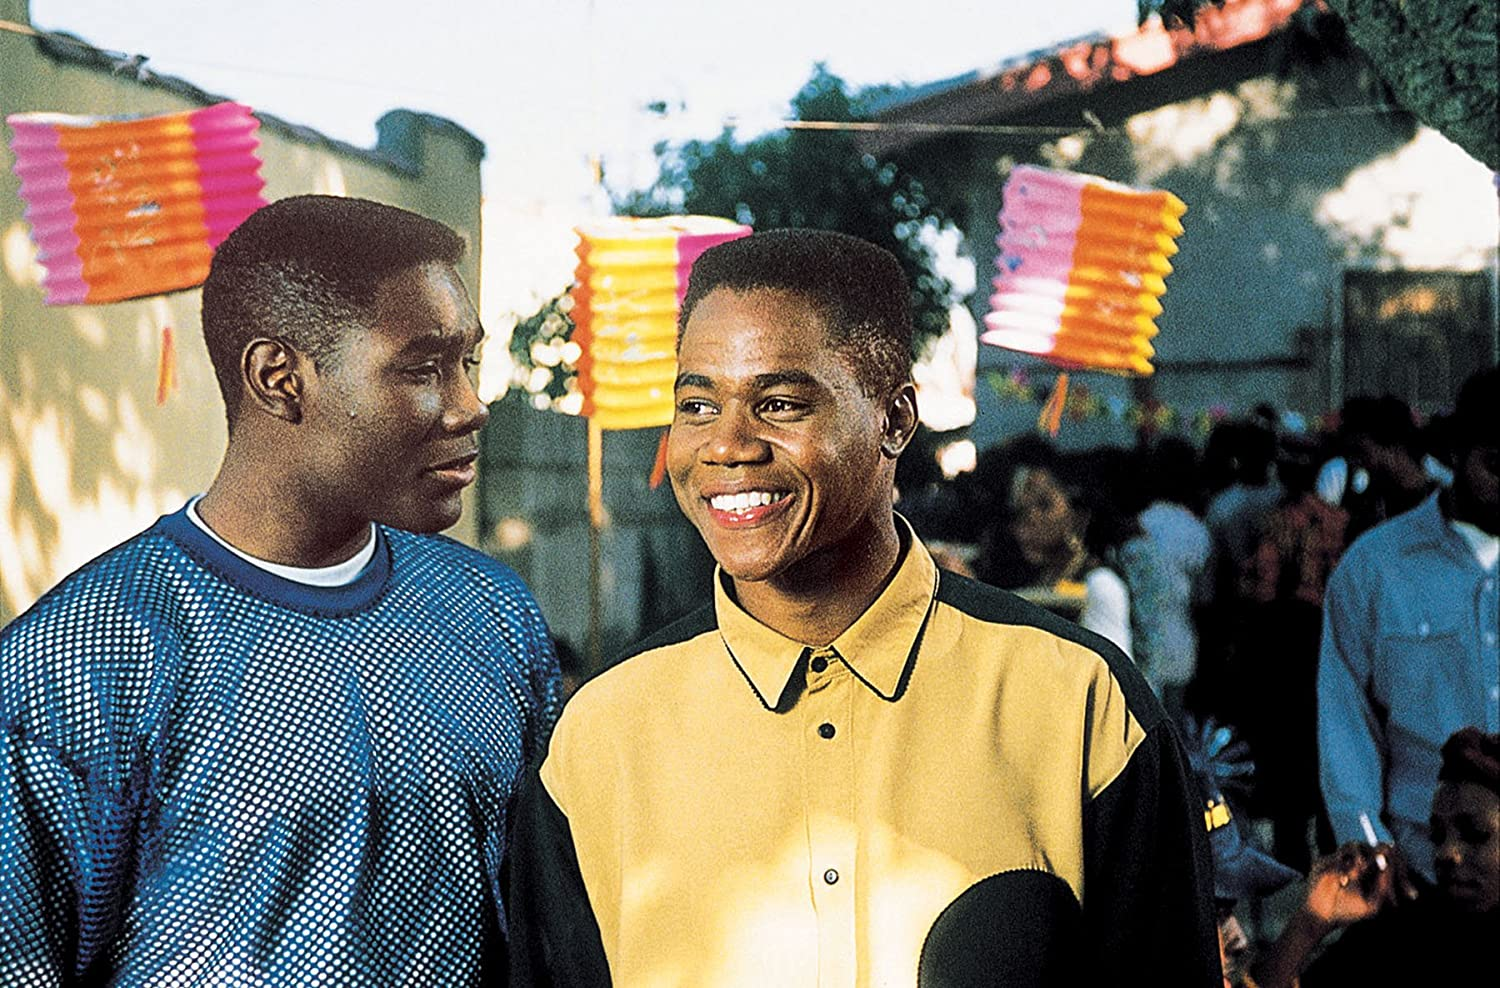 essay on boyz n the hood Boyz n the hood in his movie boyz n the hood, director and writer john  singleton depicts what life was and still is for african americans living.